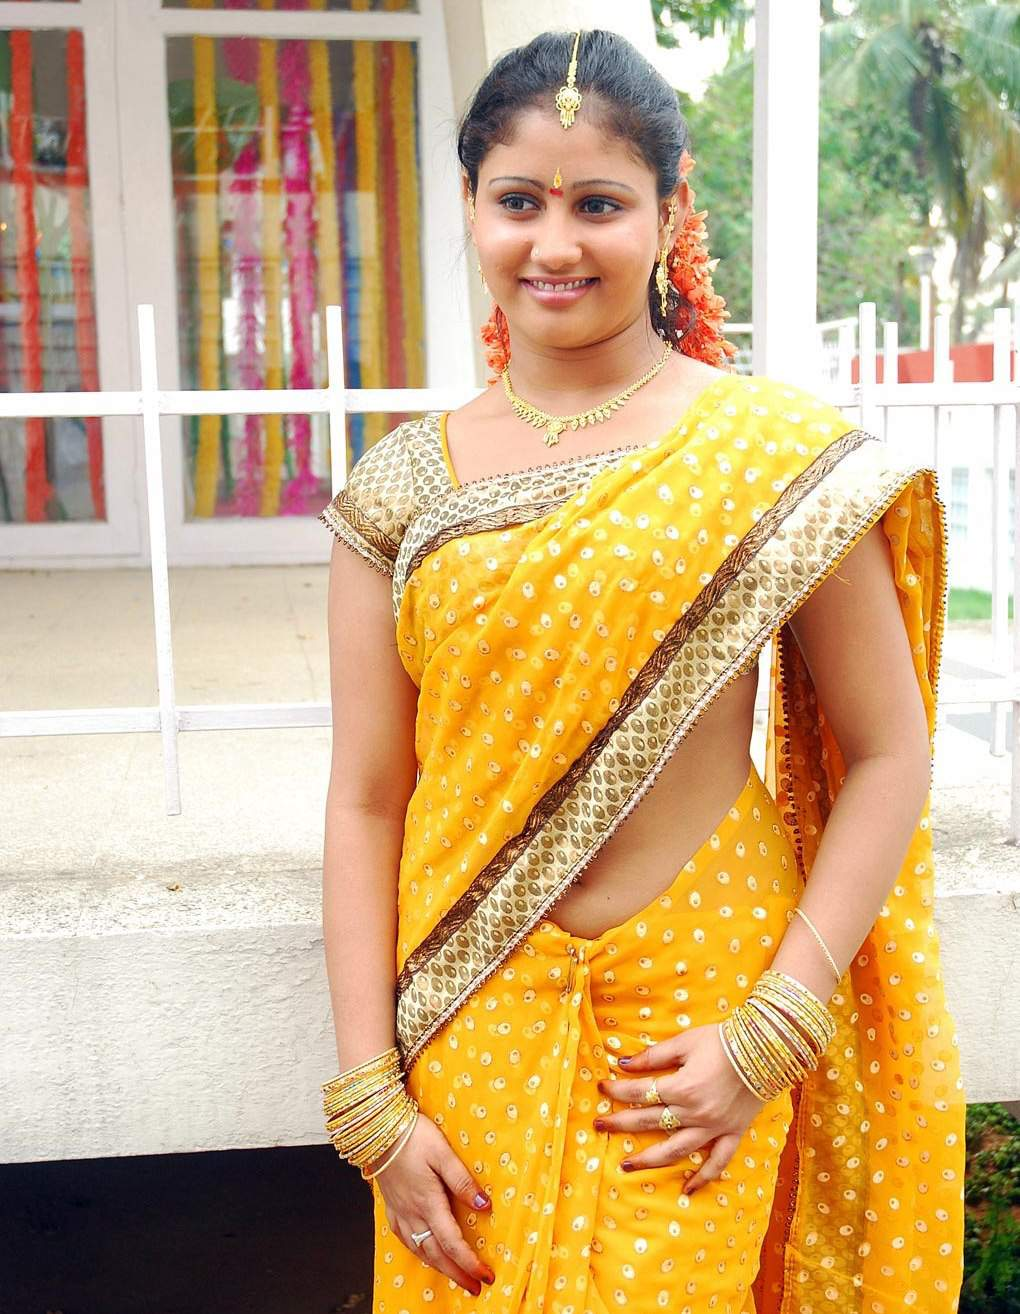 photos sharee hot bhabi